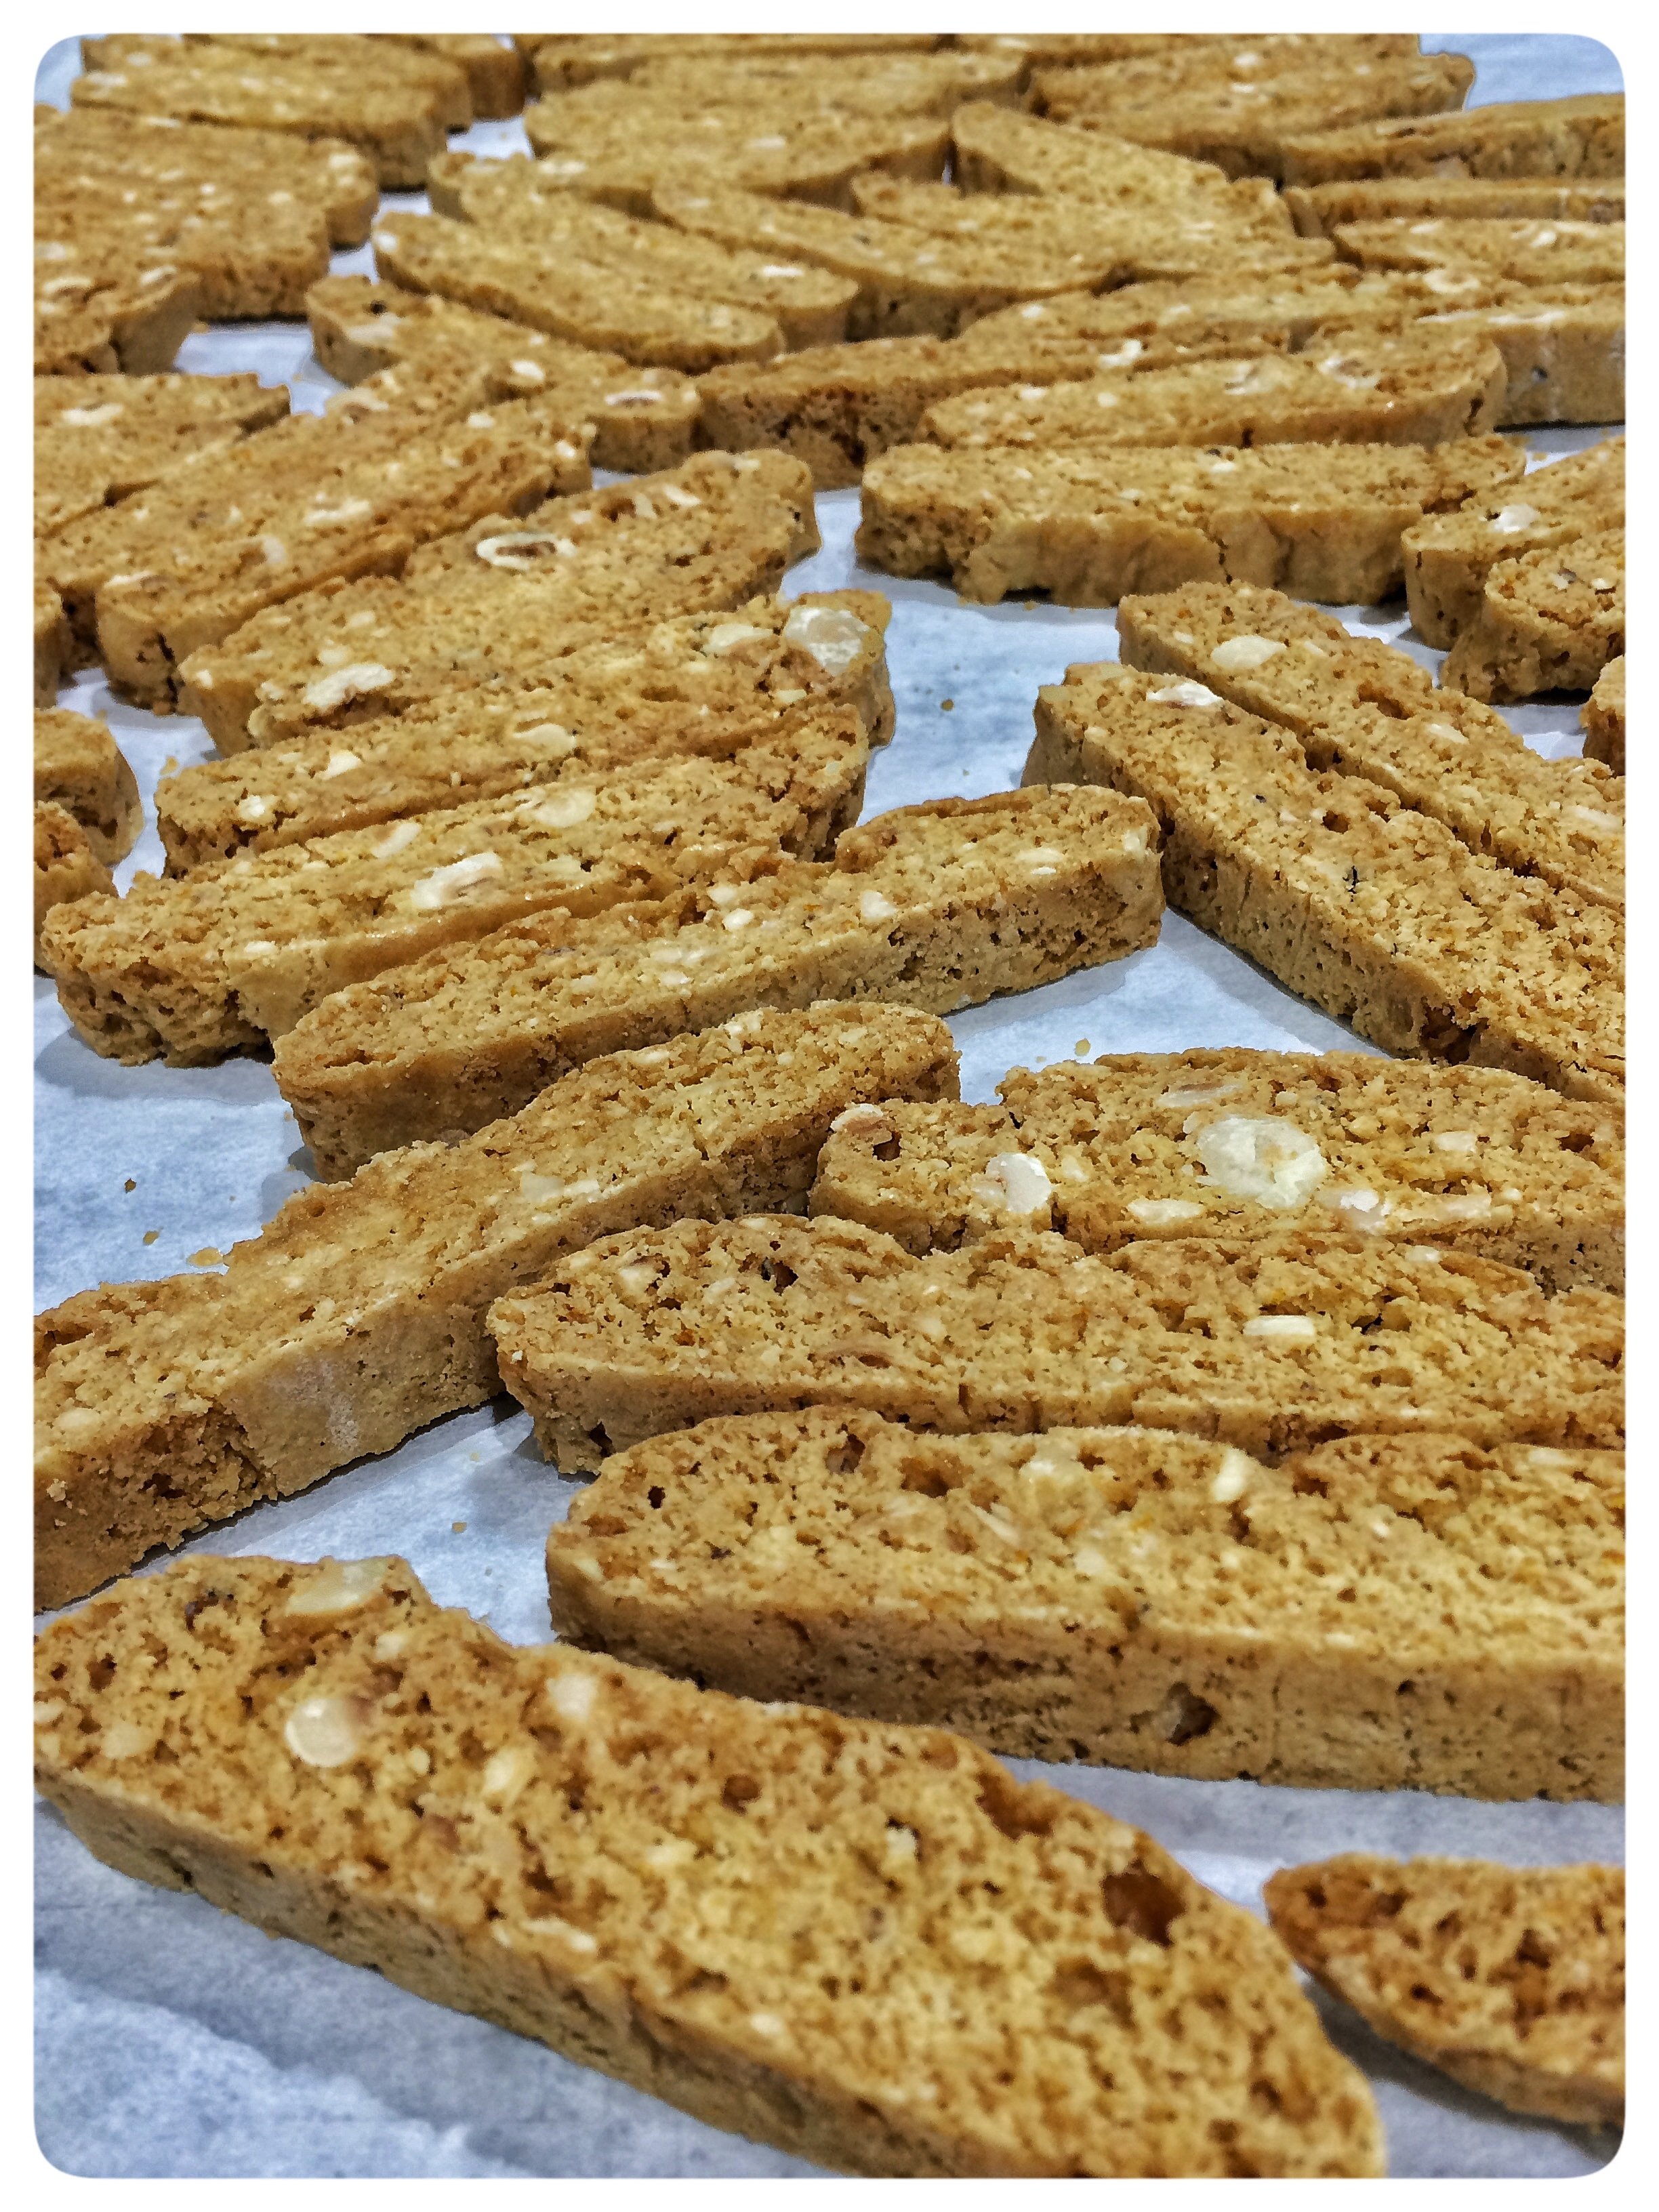 The Finished Biscotti Ready to Package